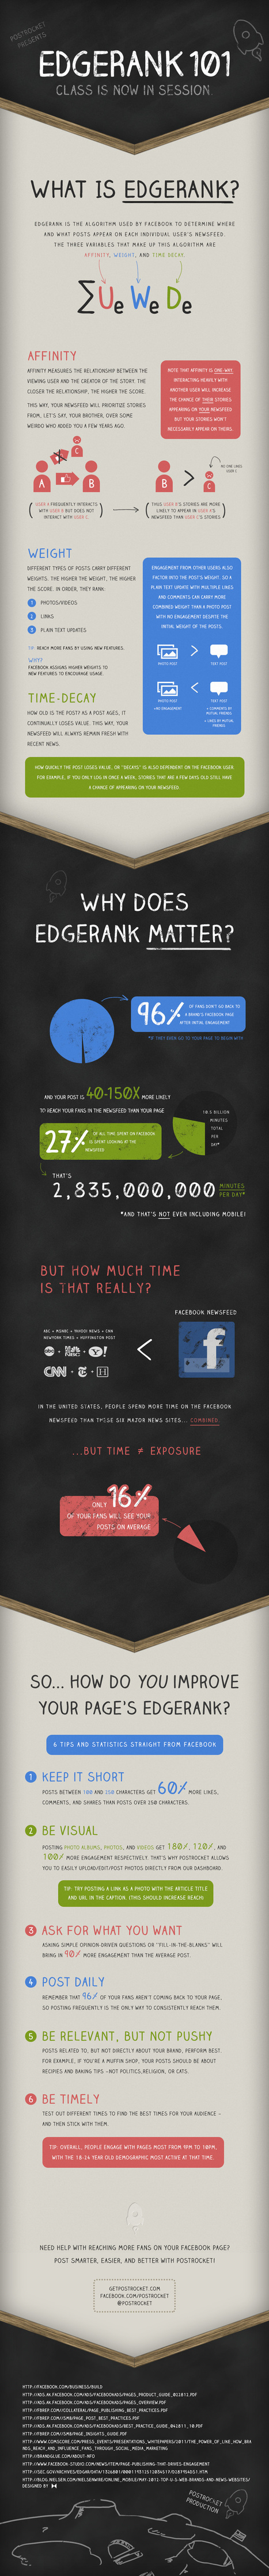 How to increase the visibility of your Facebook Page [infographic] | Business for small businesses | Scoop.it